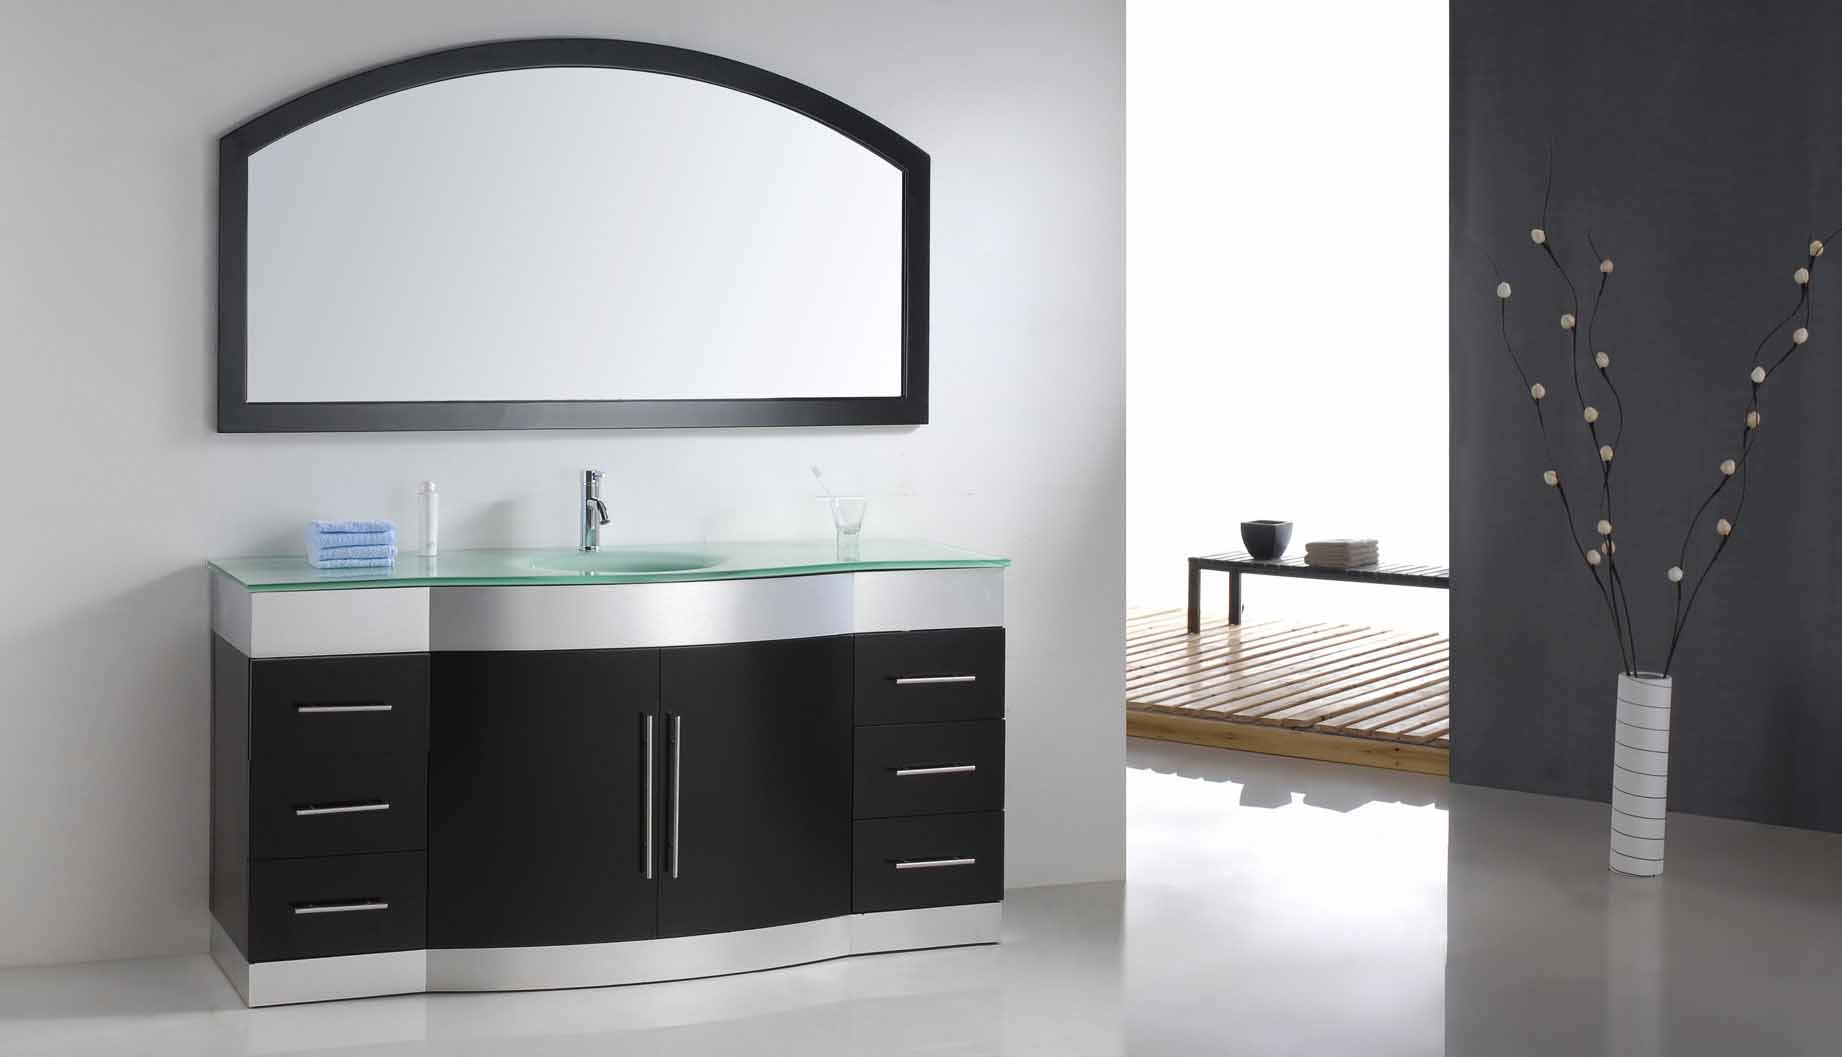 Bathroom Vanity Cabinets For Lessmodern bathroom vanity sink creative decoration also vanities for